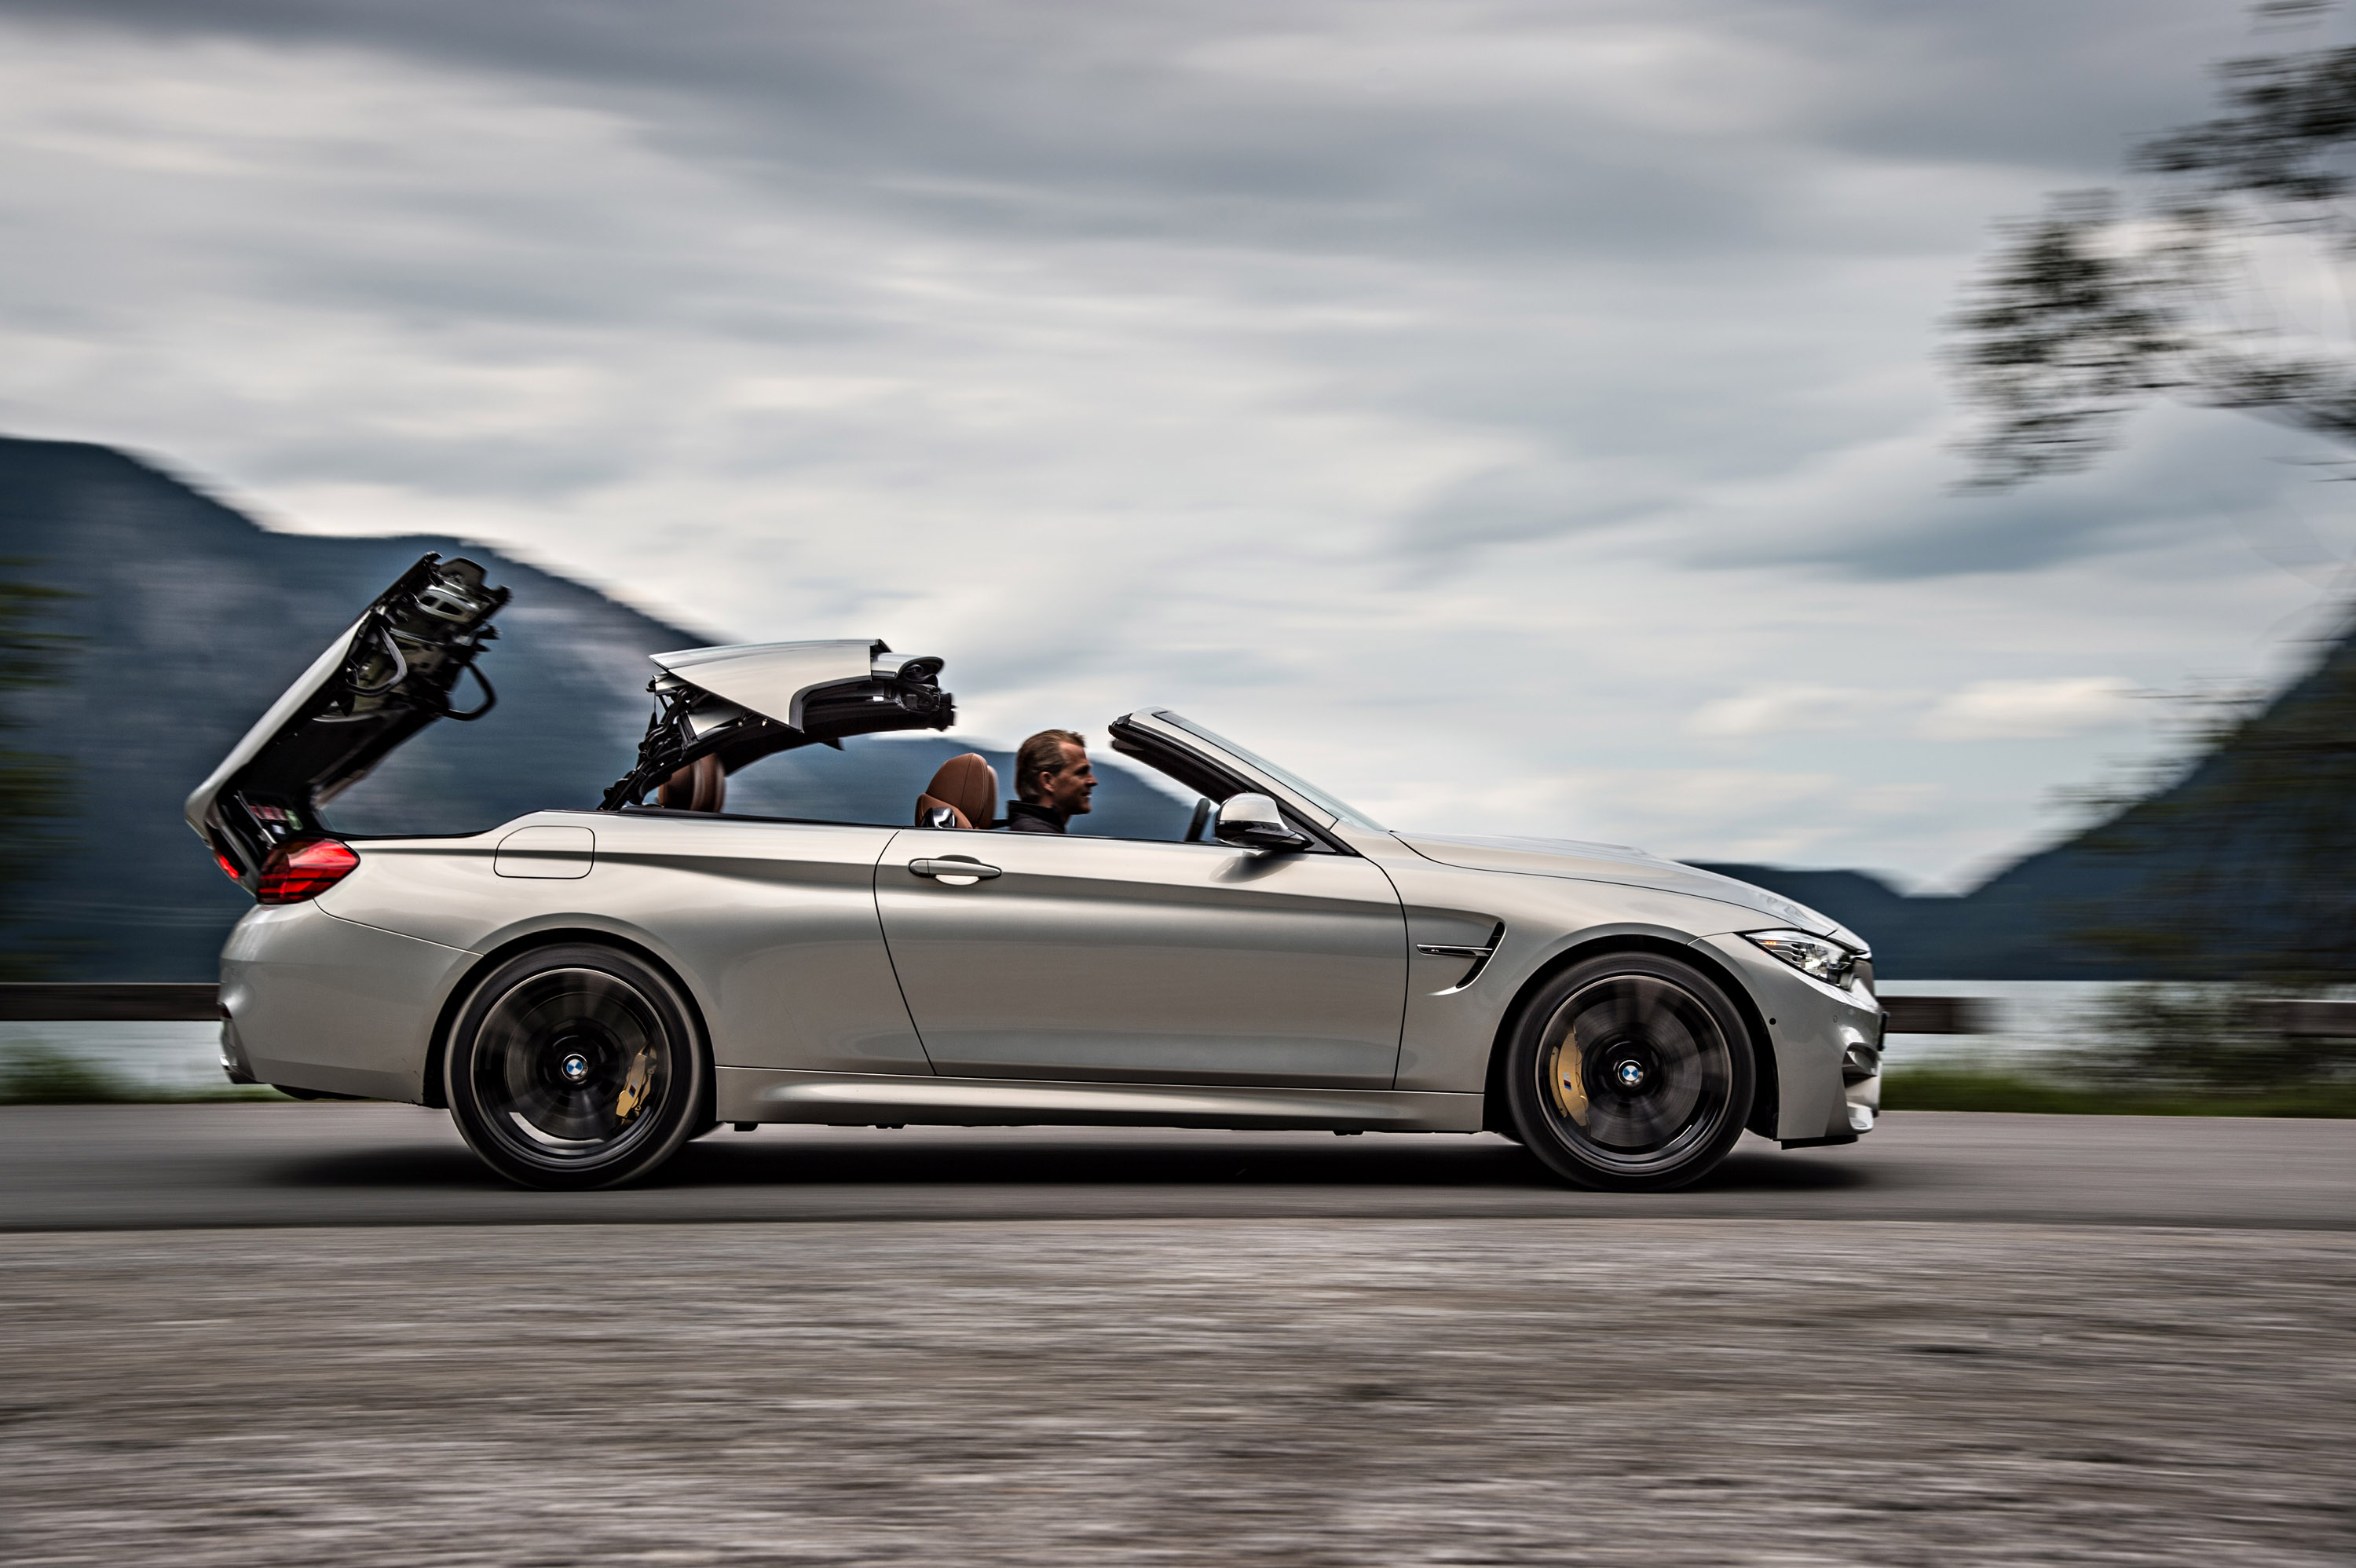 2015 bmw f83 m4 convertible picture 109457. Black Bedroom Furniture Sets. Home Design Ideas